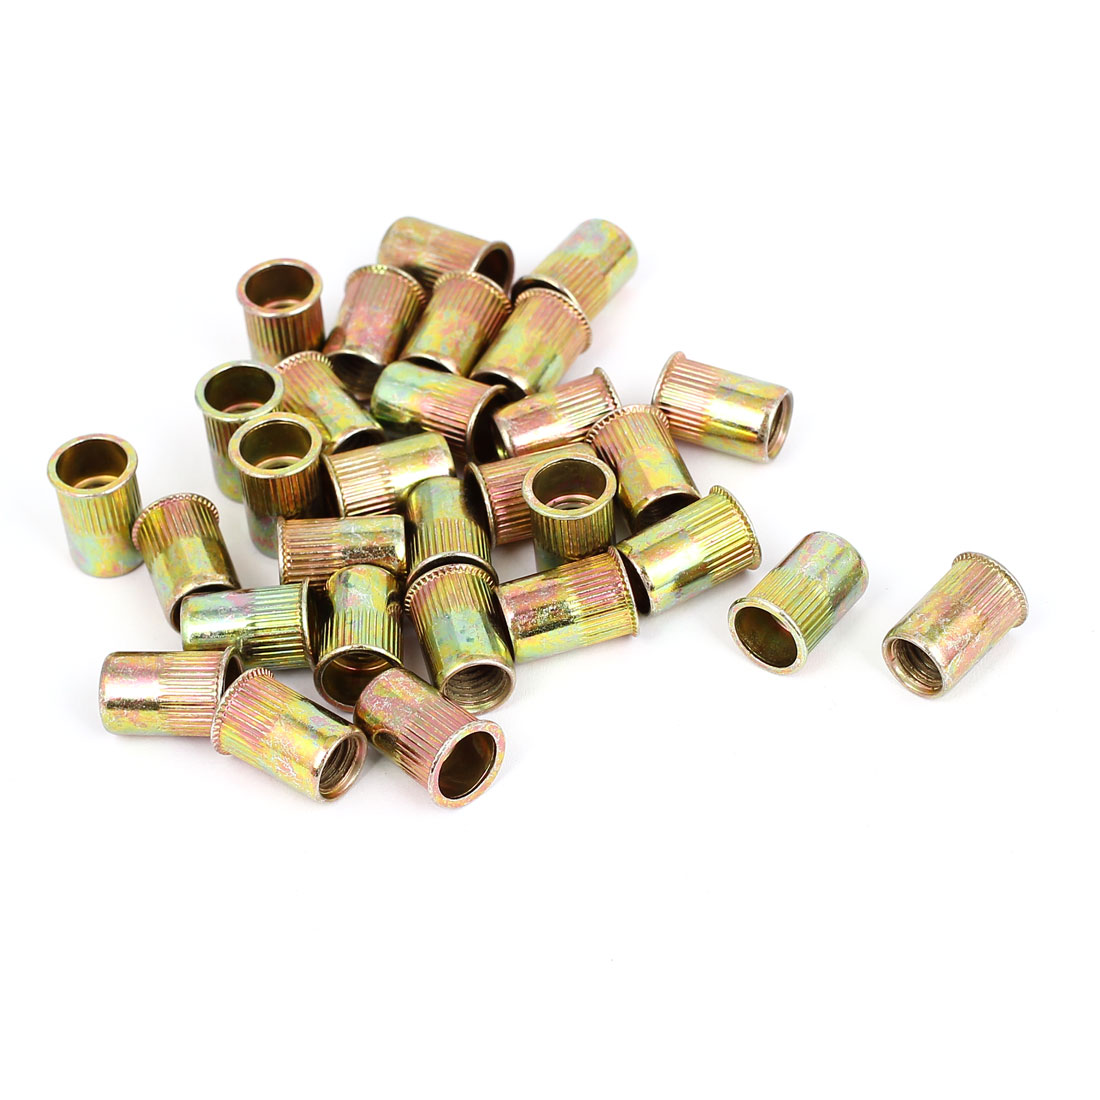 30pcs M8x17mm Flat Head Threaded Rivet Nut Insert Nutsert Fasteners 1.25mm Pitch